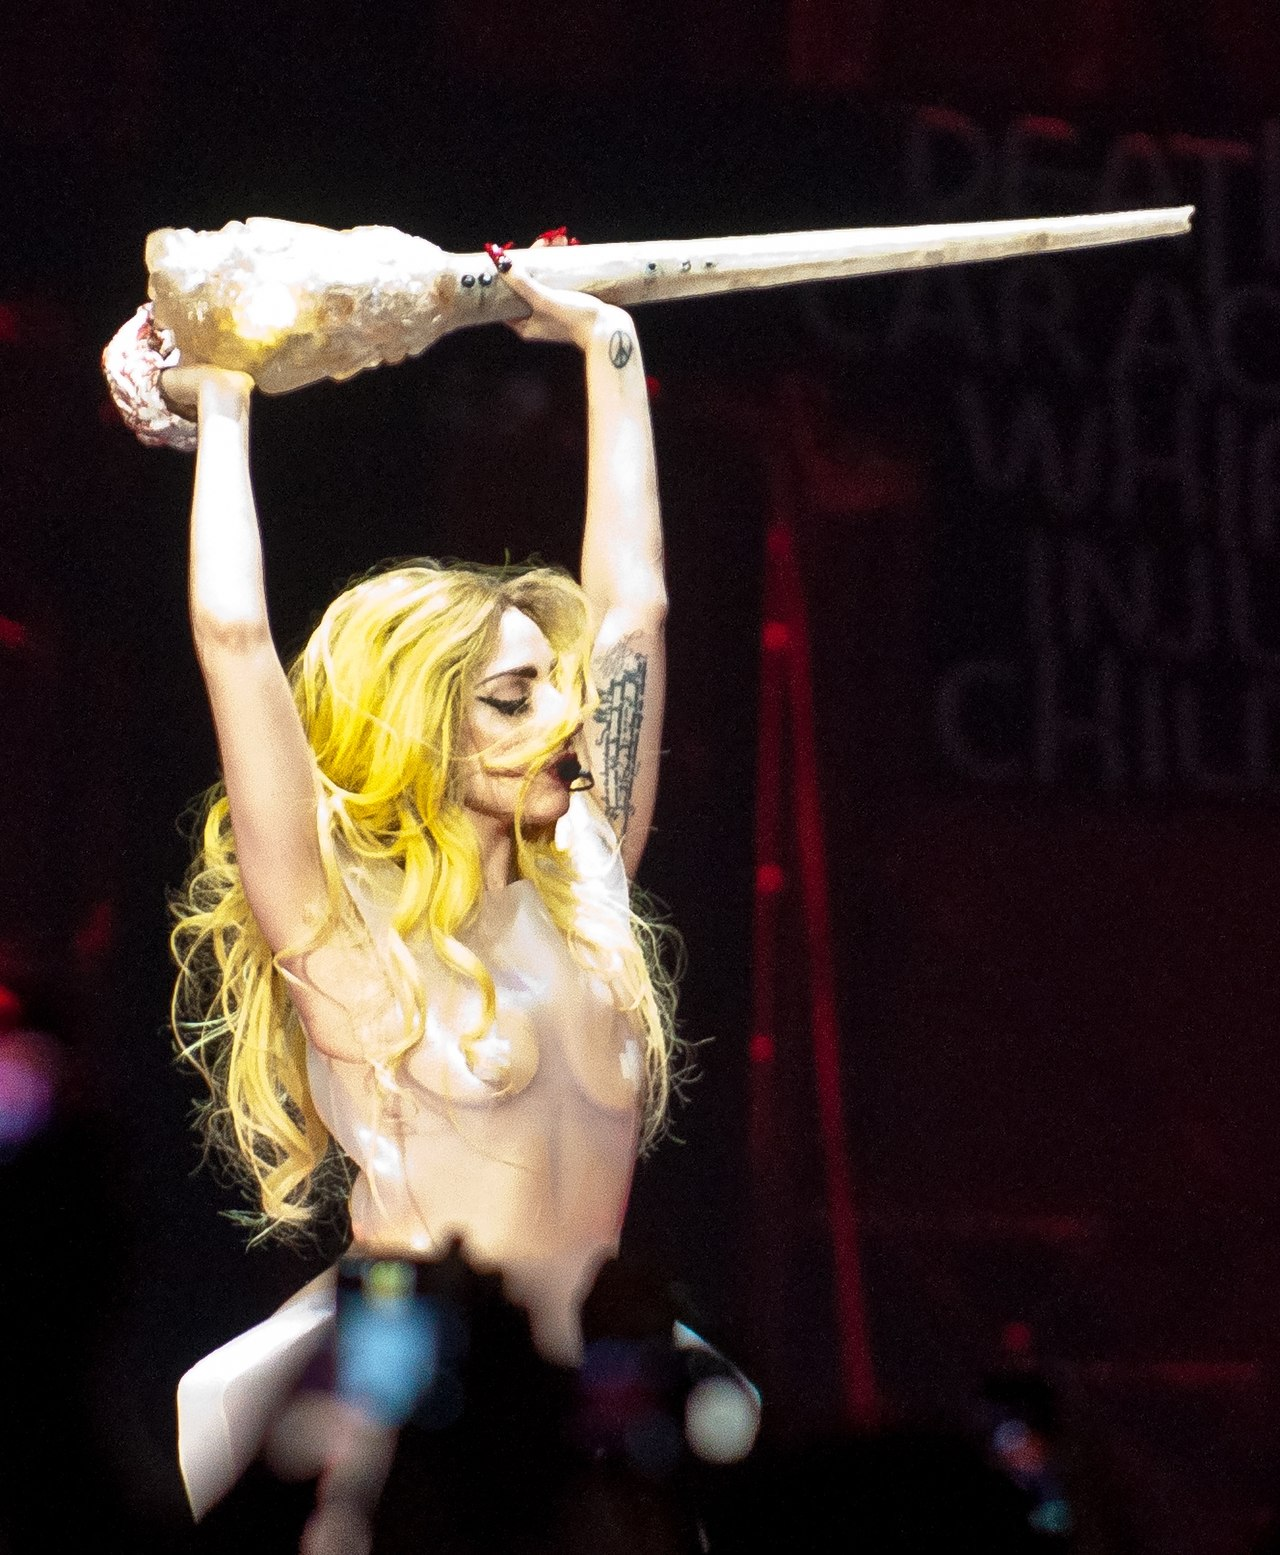 1280px-Lady_Gaga,_The_Monster_Ball_Tour,